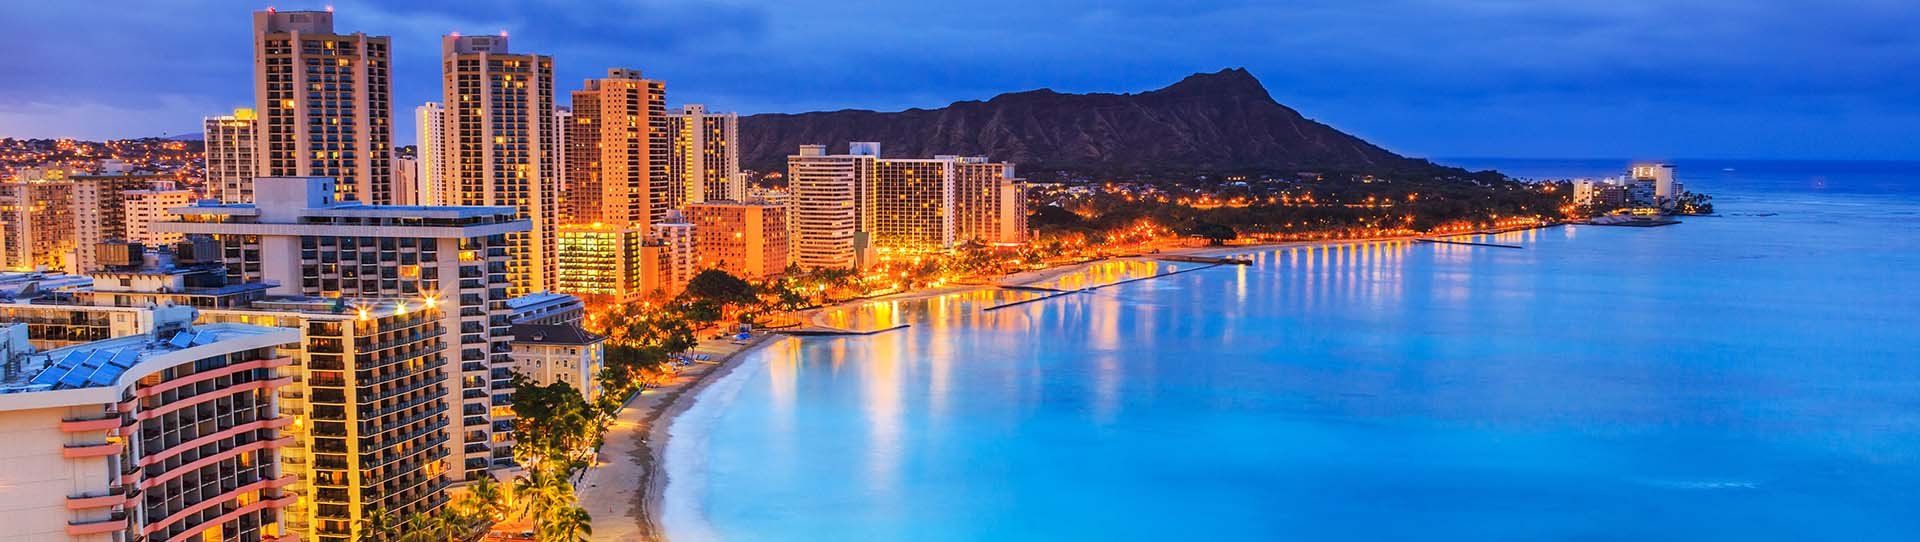 Stay at the Modern Honolulu and explore Waikiki.